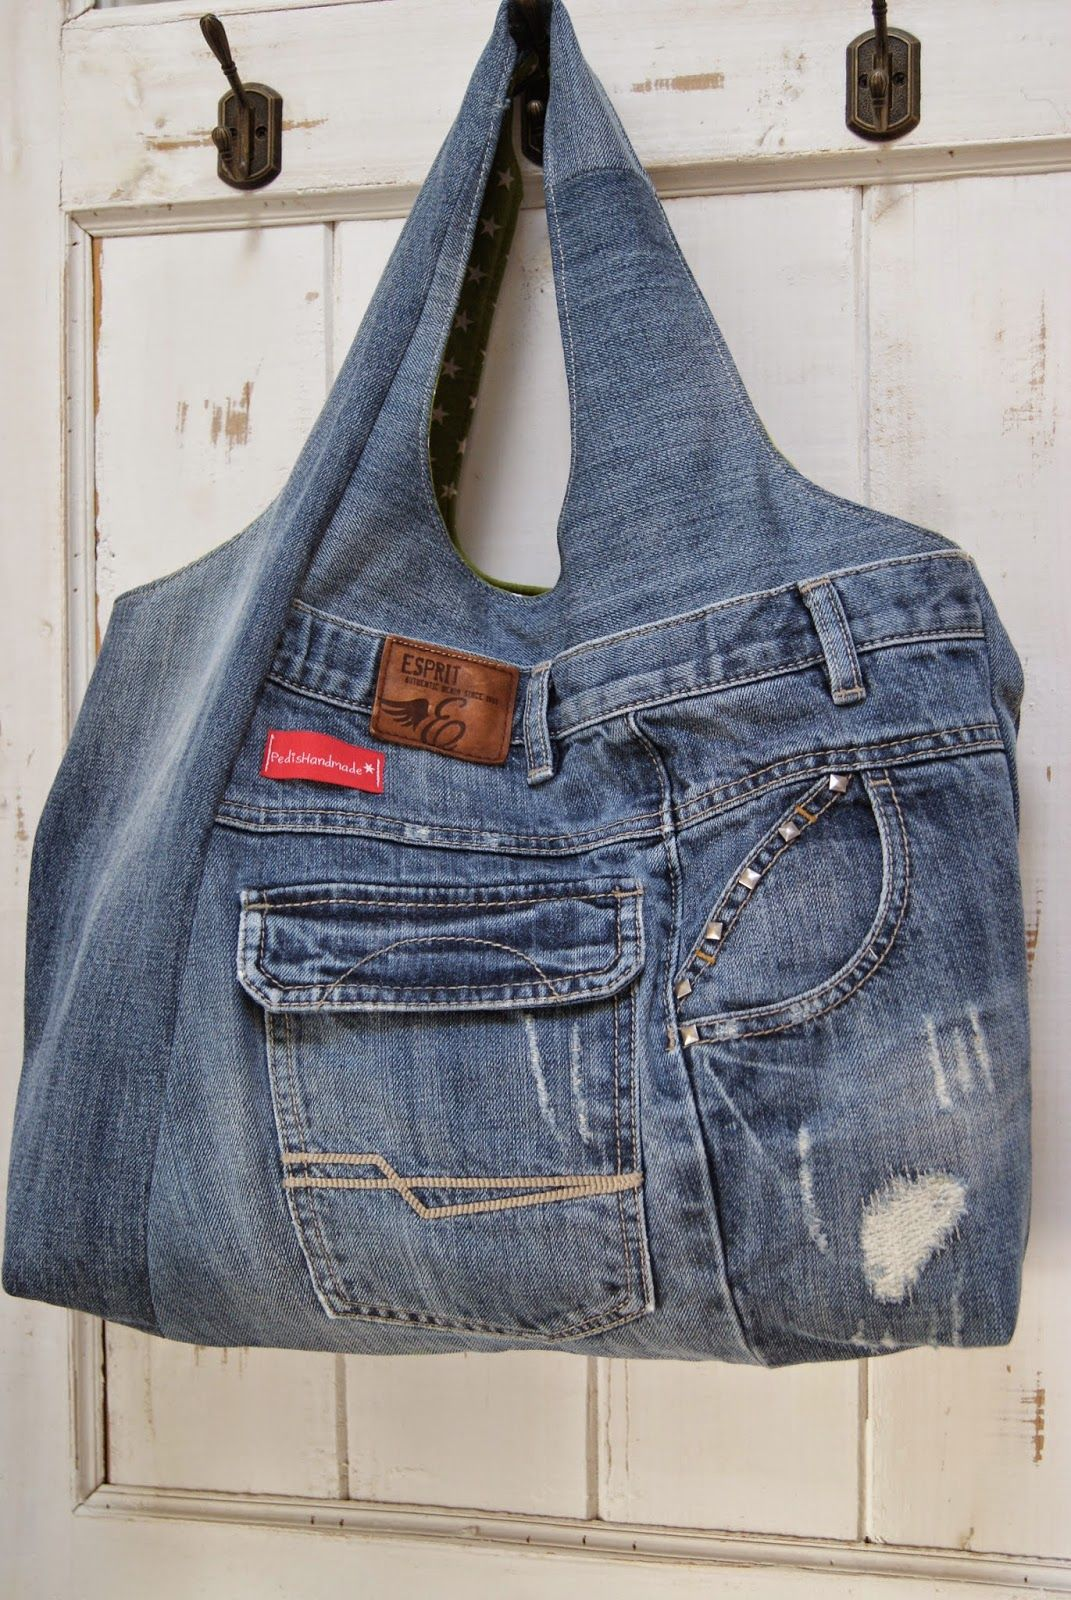 tasche aus alter jeans bag made from old pair of jeans upcycling old jeans pinterest. Black Bedroom Furniture Sets. Home Design Ideas